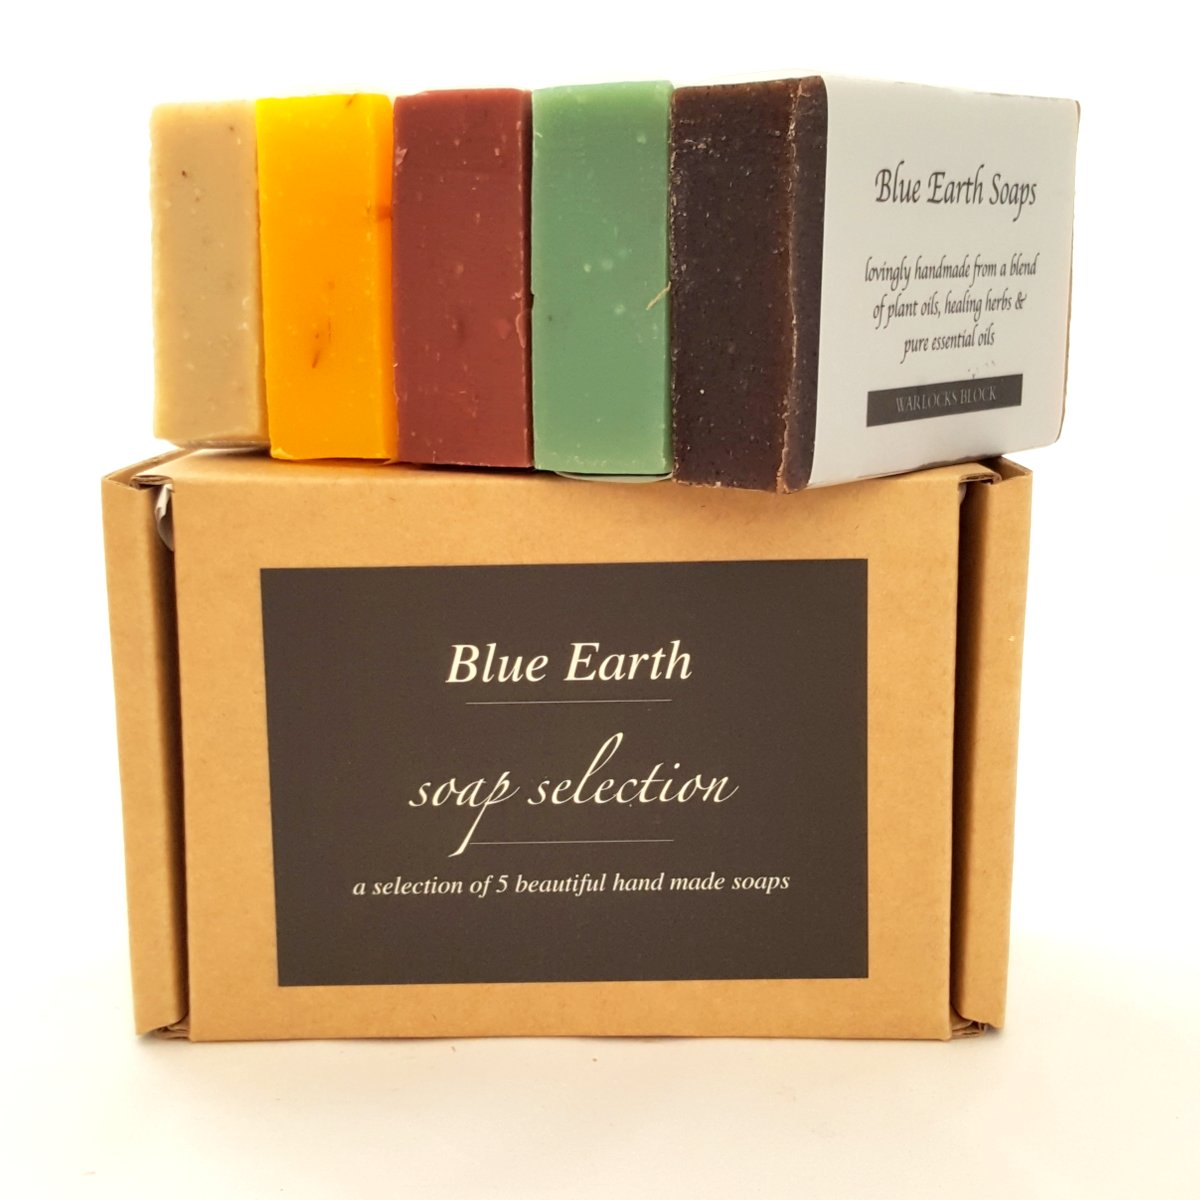 The Blue Earth Soap Selection Product Image